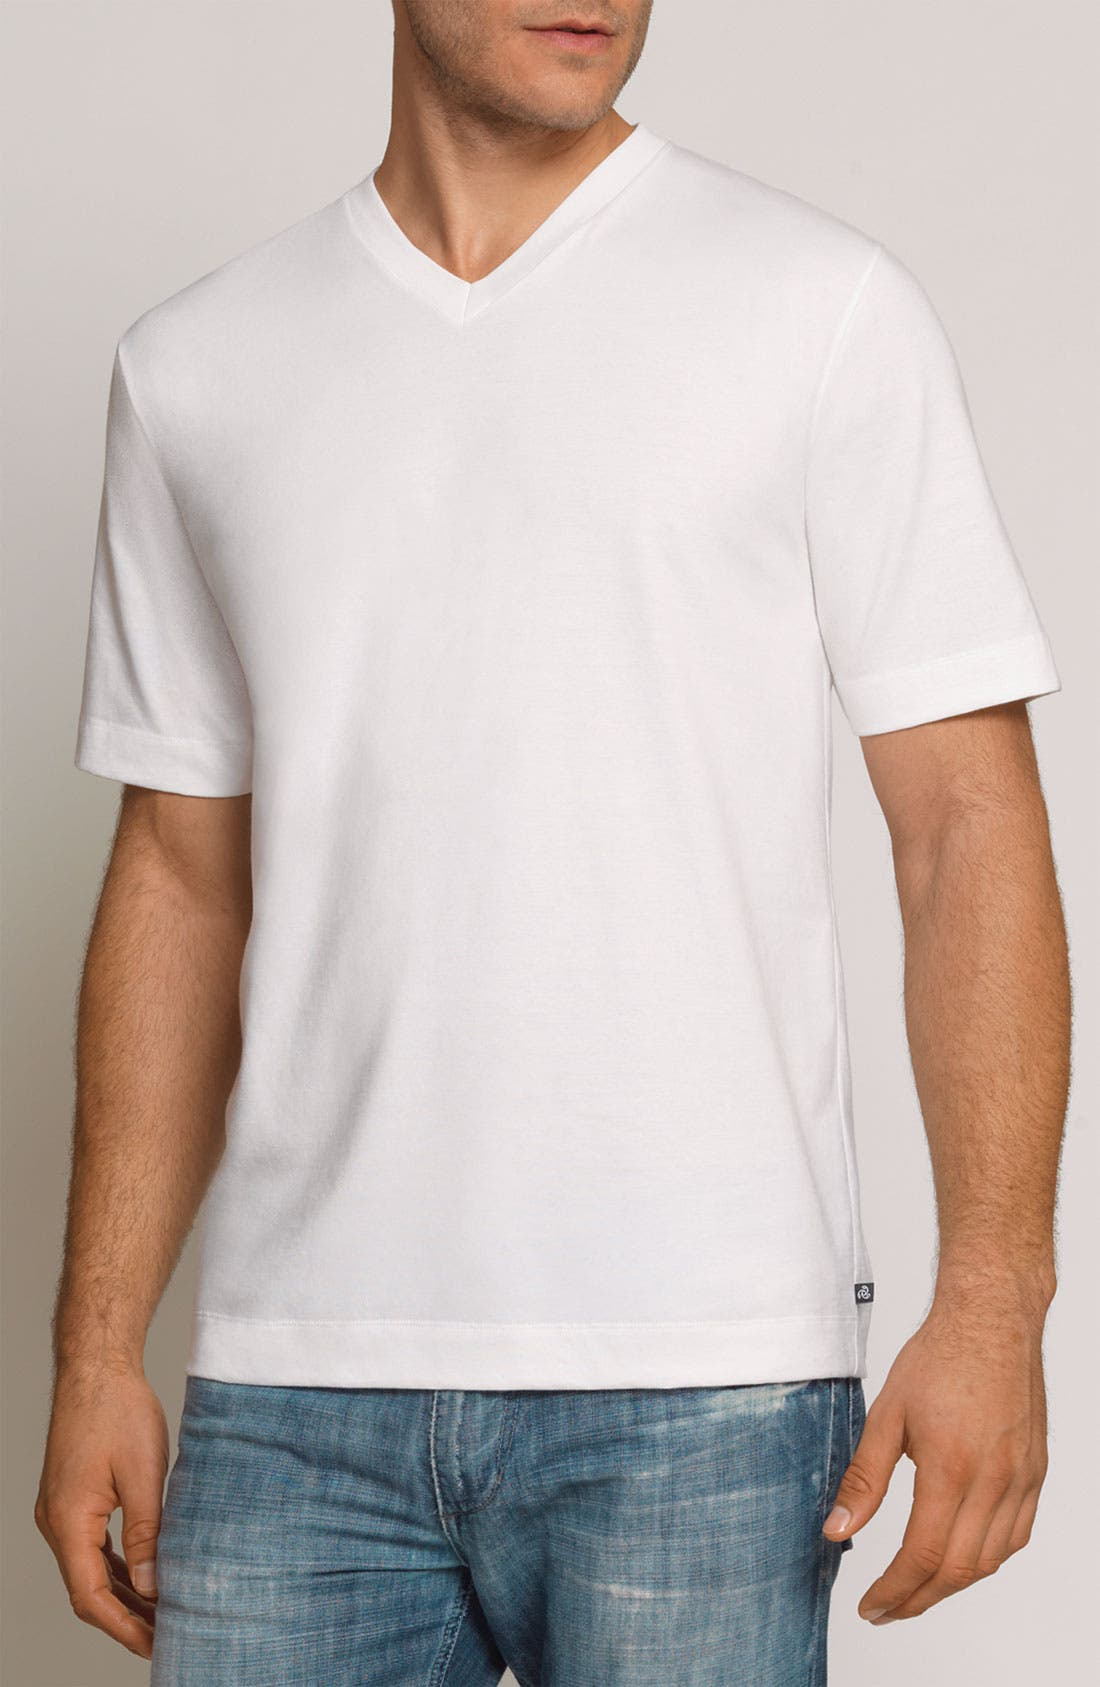 Main Image - Coopers by Jockey® 'Outlast' V-Neck T-Shirt (2-Pack)